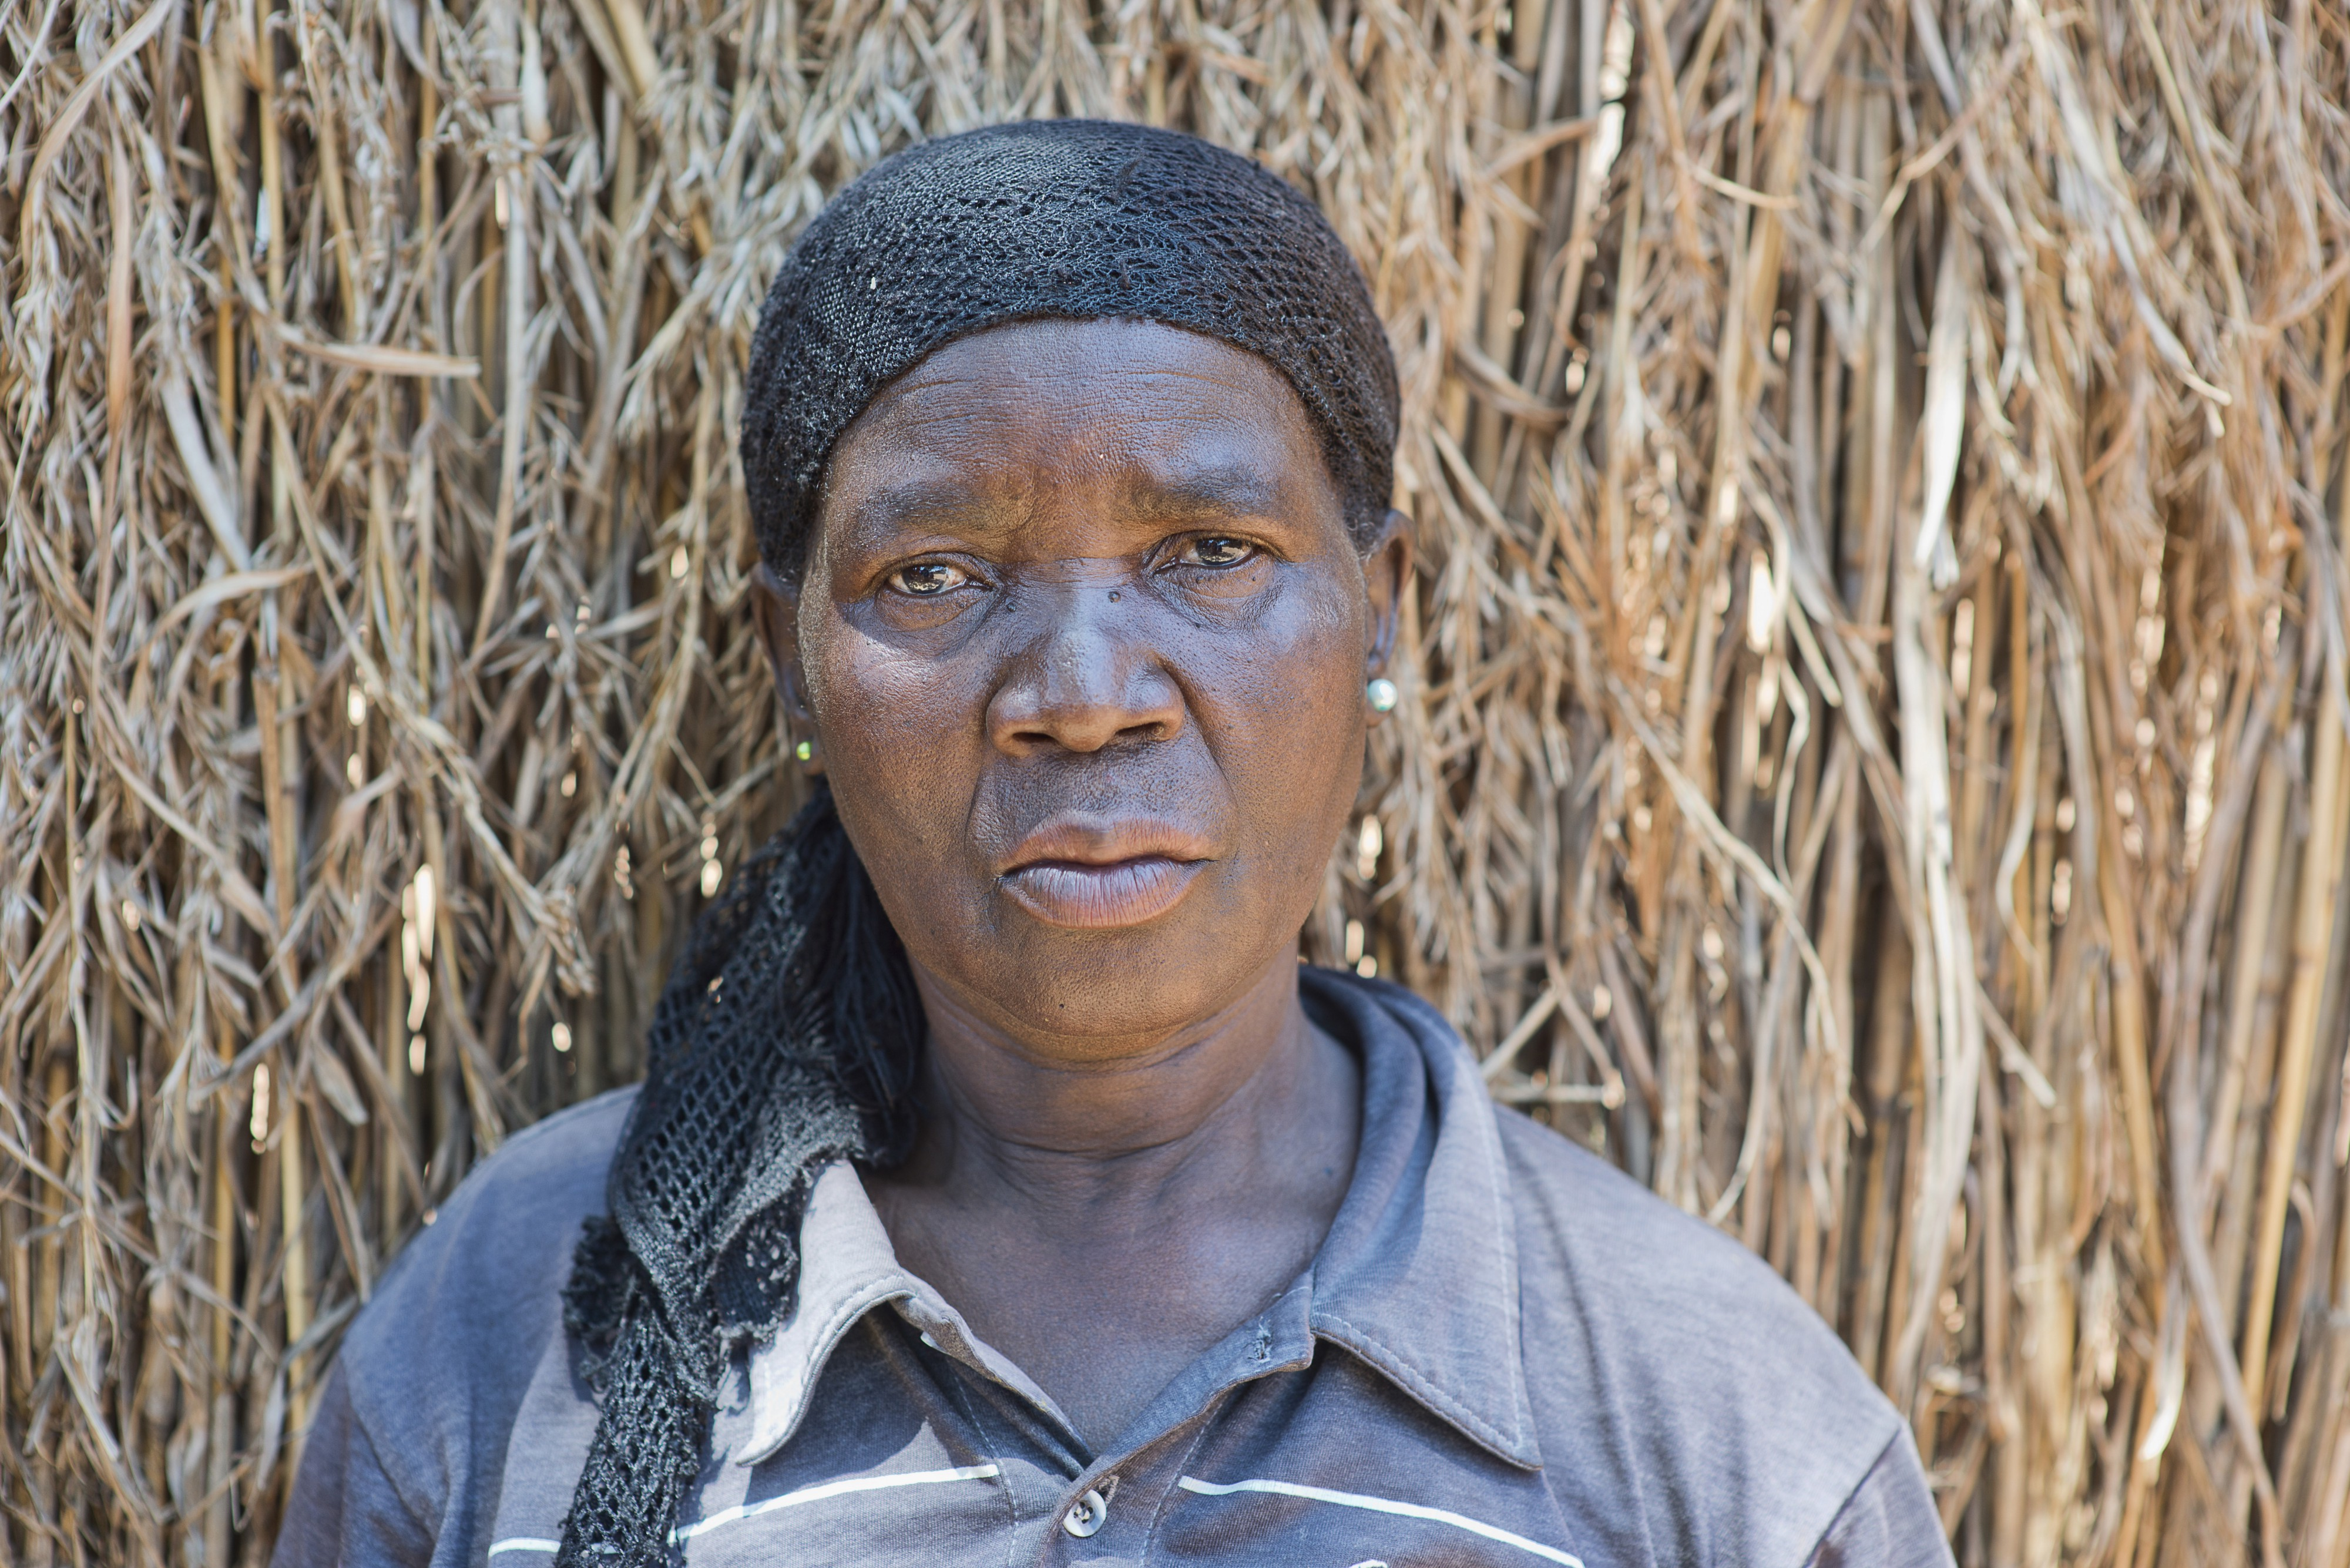 When rivers dry out: Patuma's story - IFRC - Medium